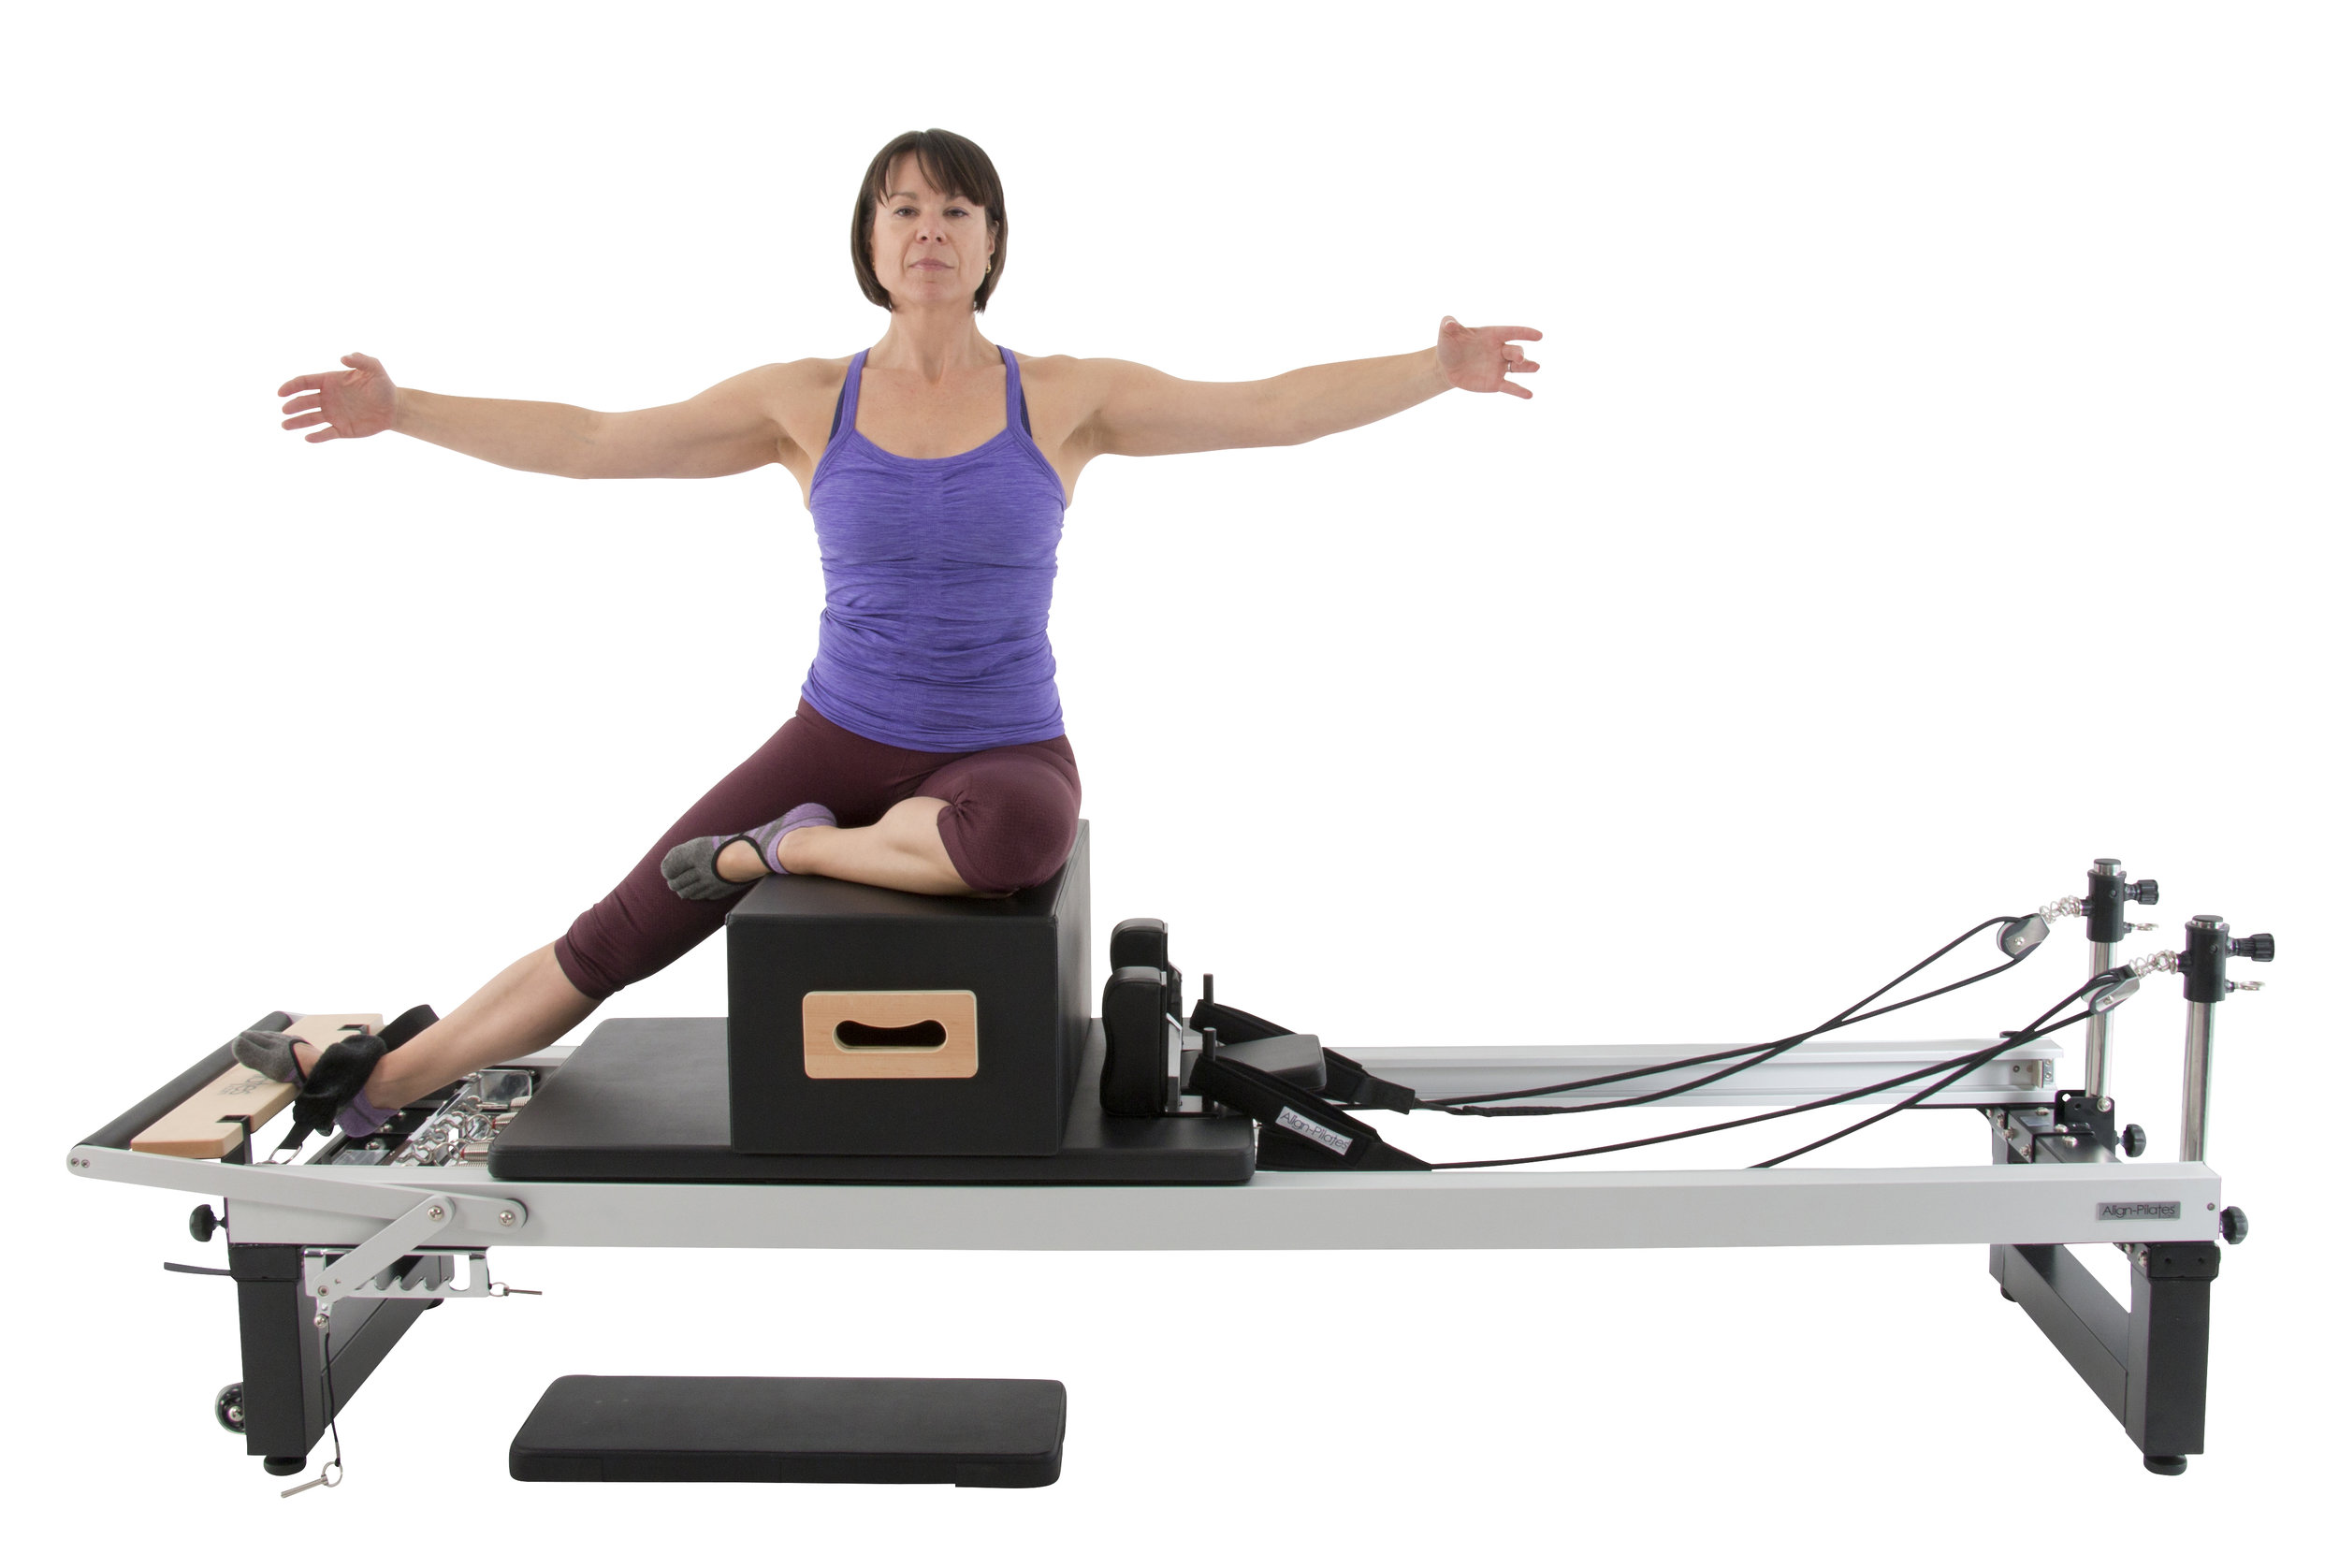 Align A2R2 studio pilates reformer with extension legs and pro sitting box